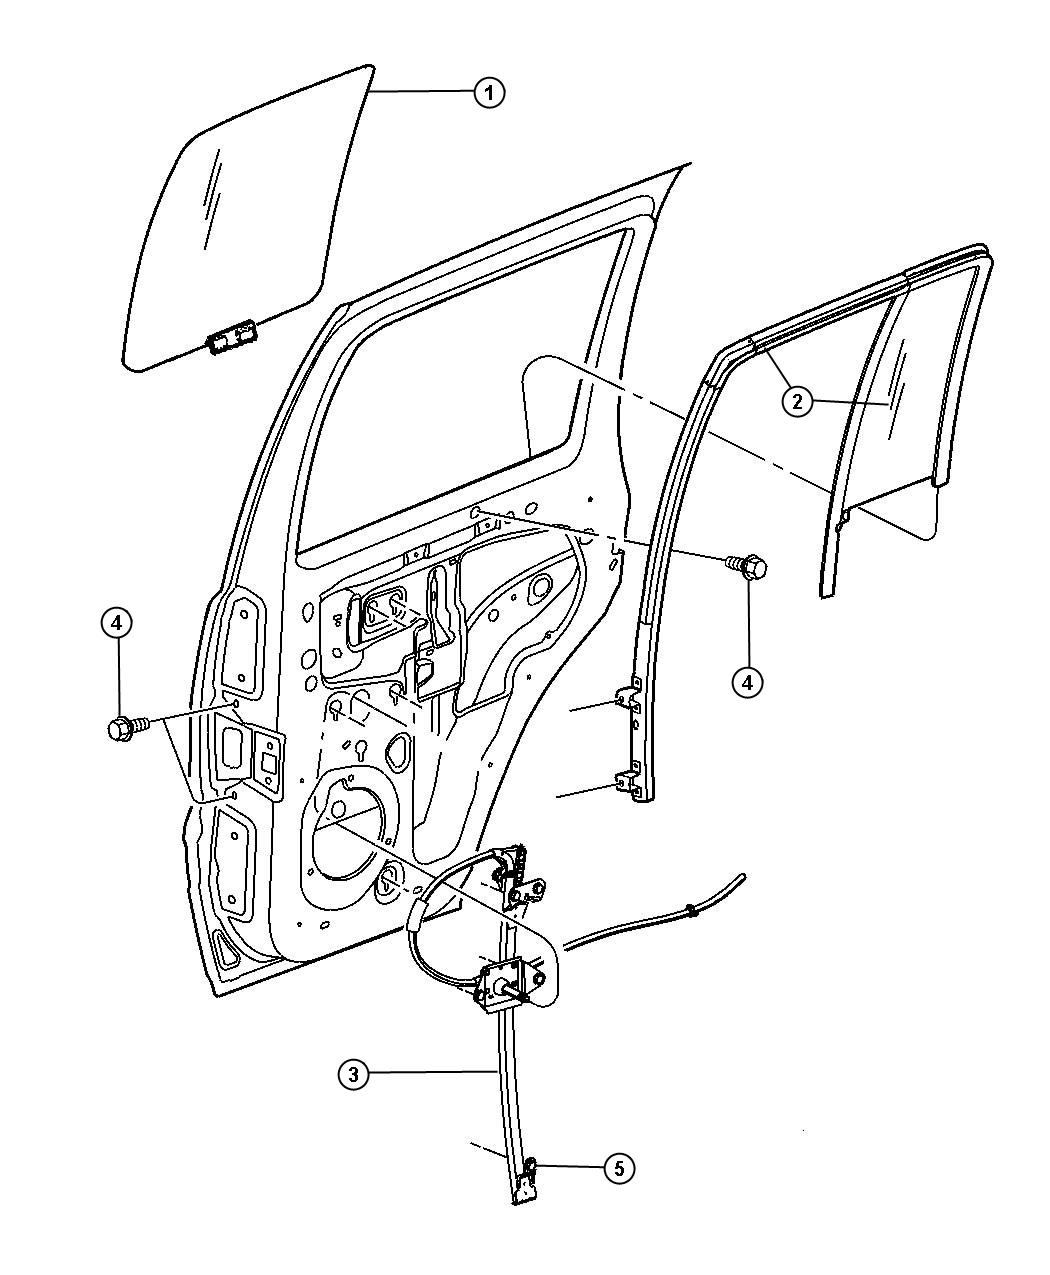 2004 Jeep Grand Cherokee Window Regulator Diagram